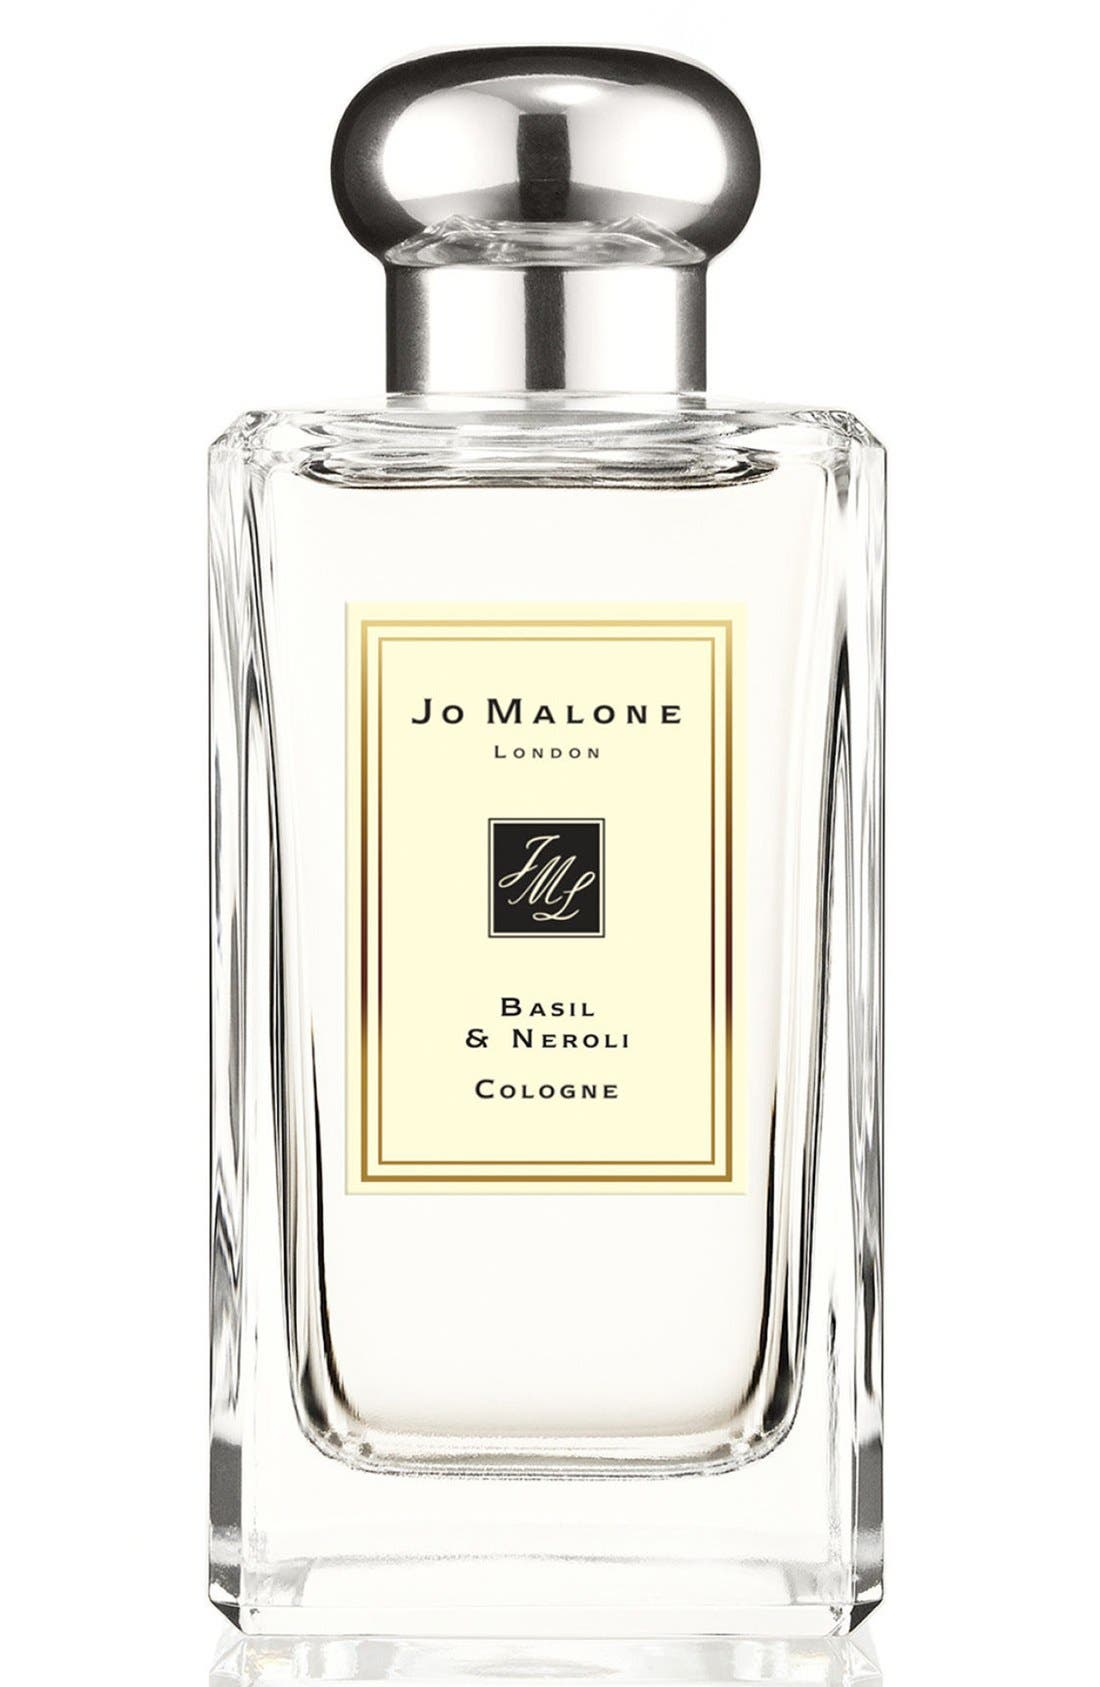 Jo Malone London™ Basil & Neroli Cologne